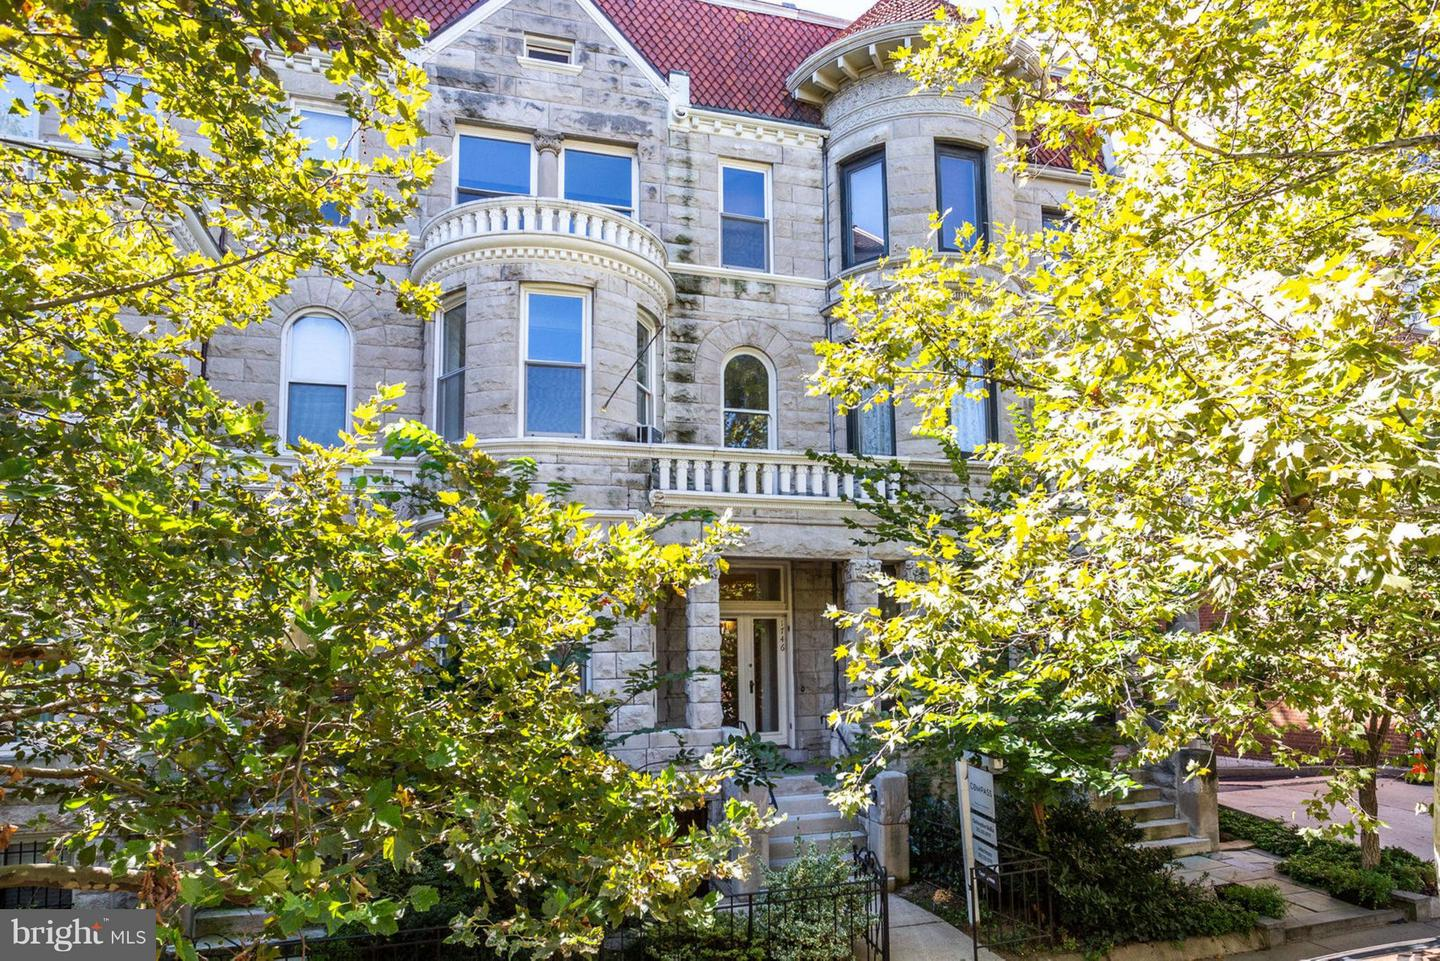 Single Family Home for Sale at 1746 Q St Nw 1746 Q St Nw Washington, District Of Columbia 20009 United States